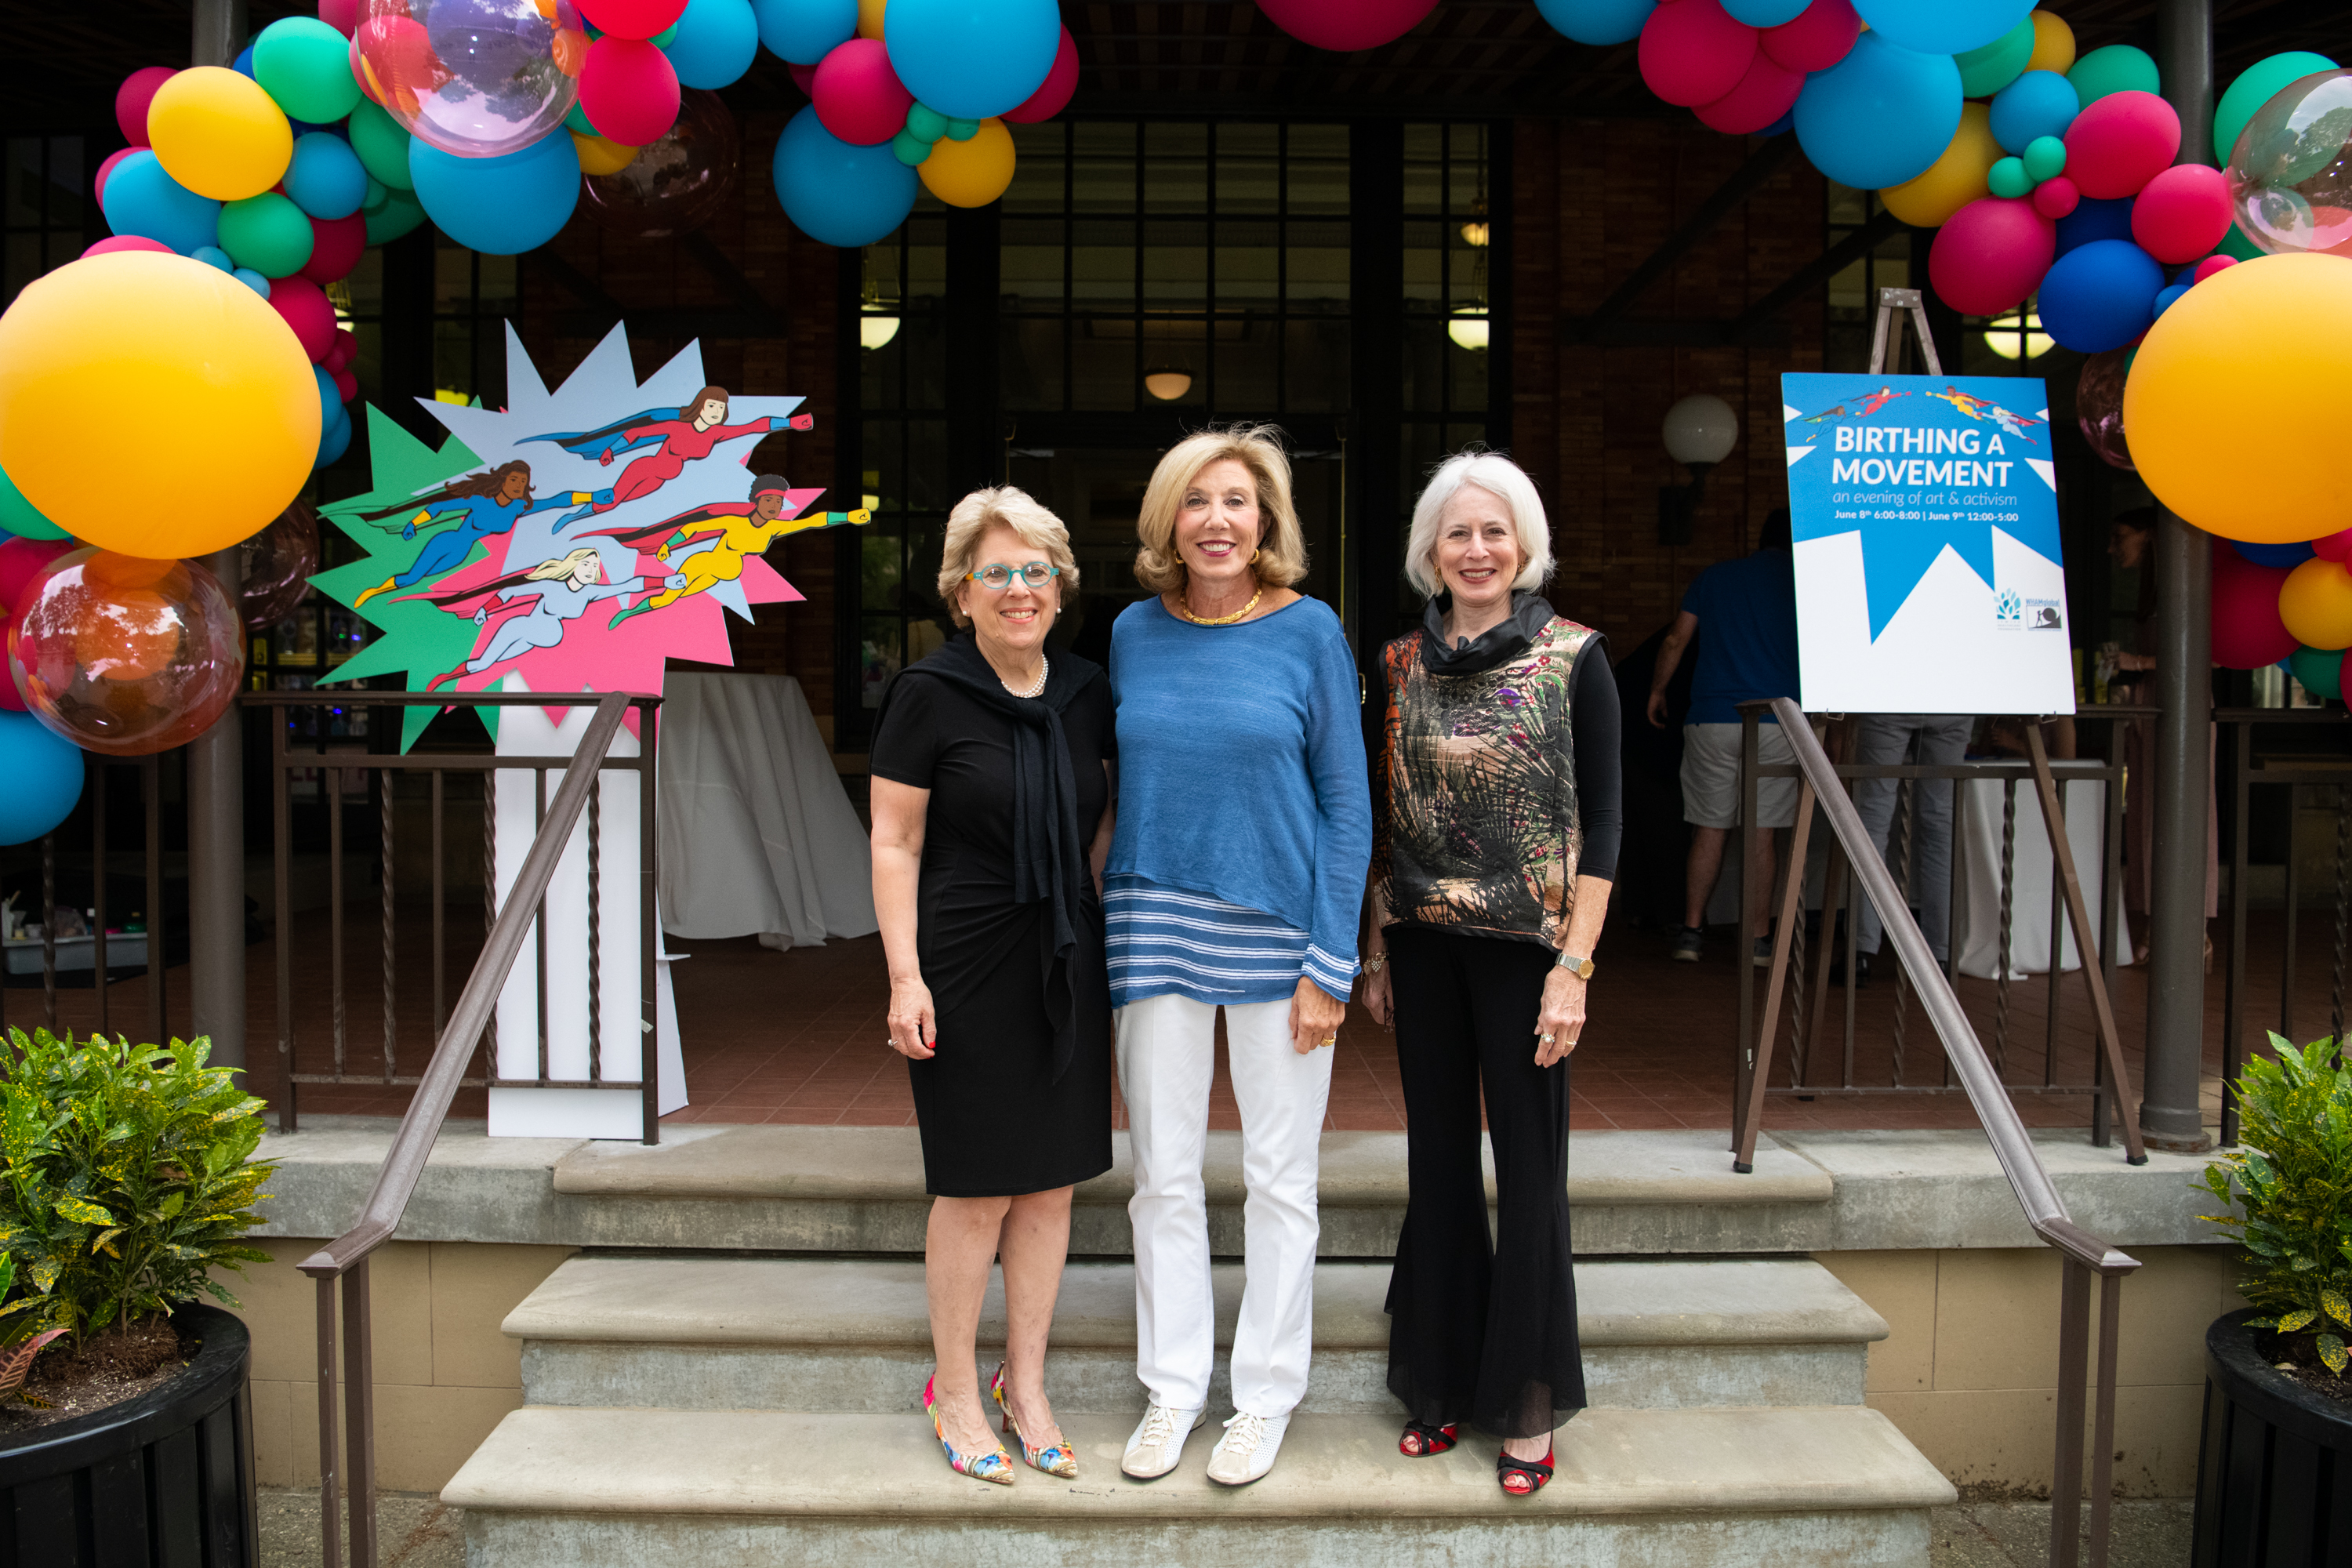 Debra L. Caplan, MPA; Patricia L. Siger; and Karen Wolk Feinstein, PhD out front of Birthing A Movement on Saturday, June 8.